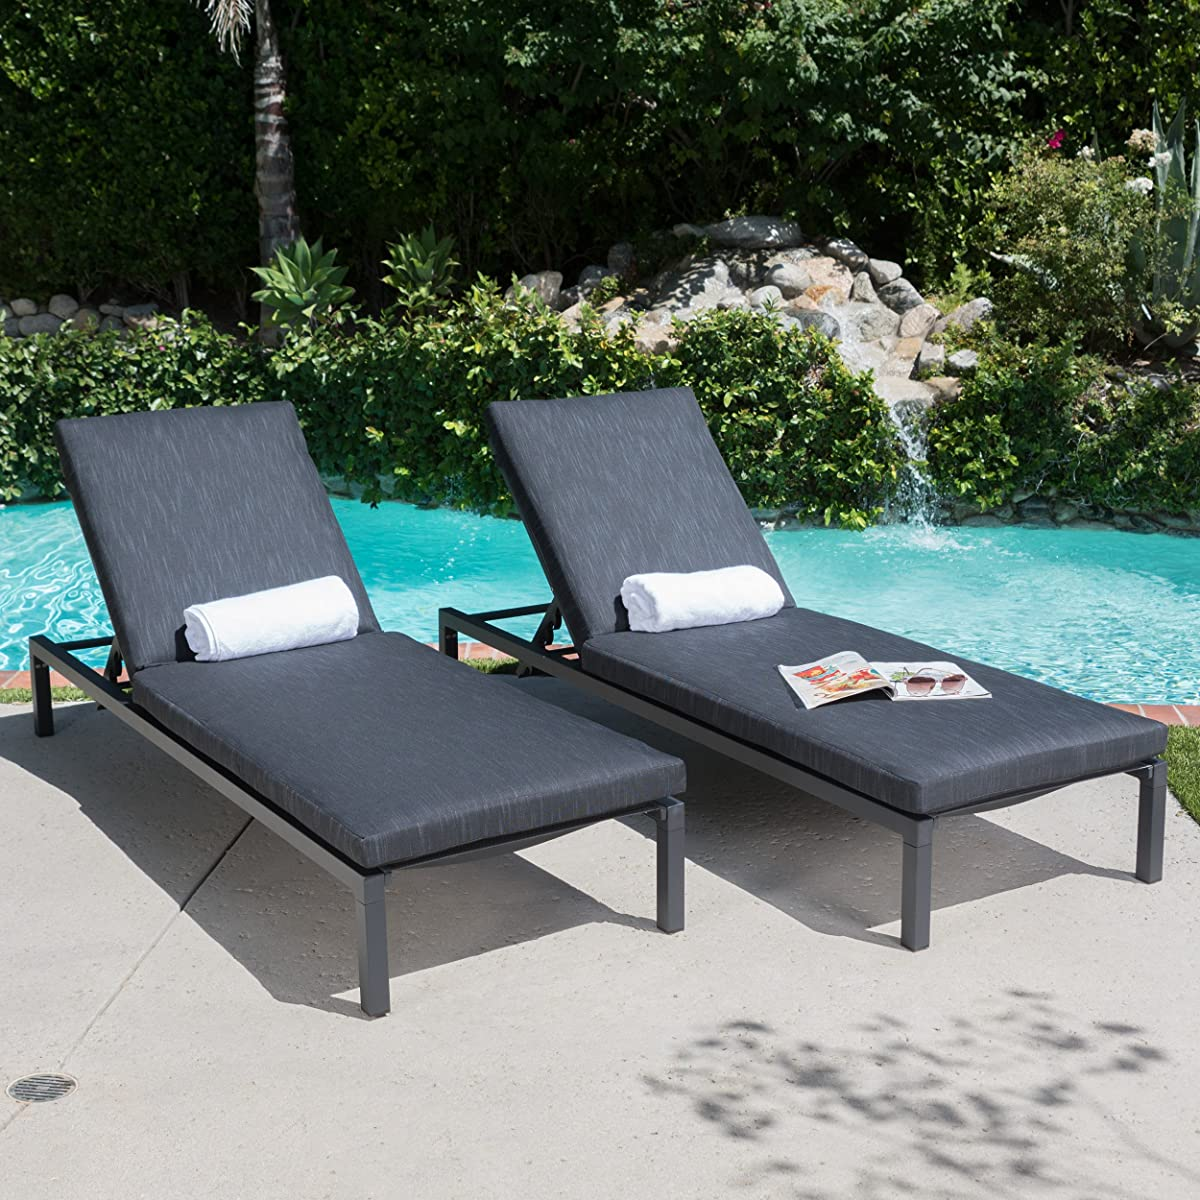 Nealie Outdoor Mesh Black Aluminum Frame Chaise Lounge w/ Water Resistant Cushion (Set of 2)